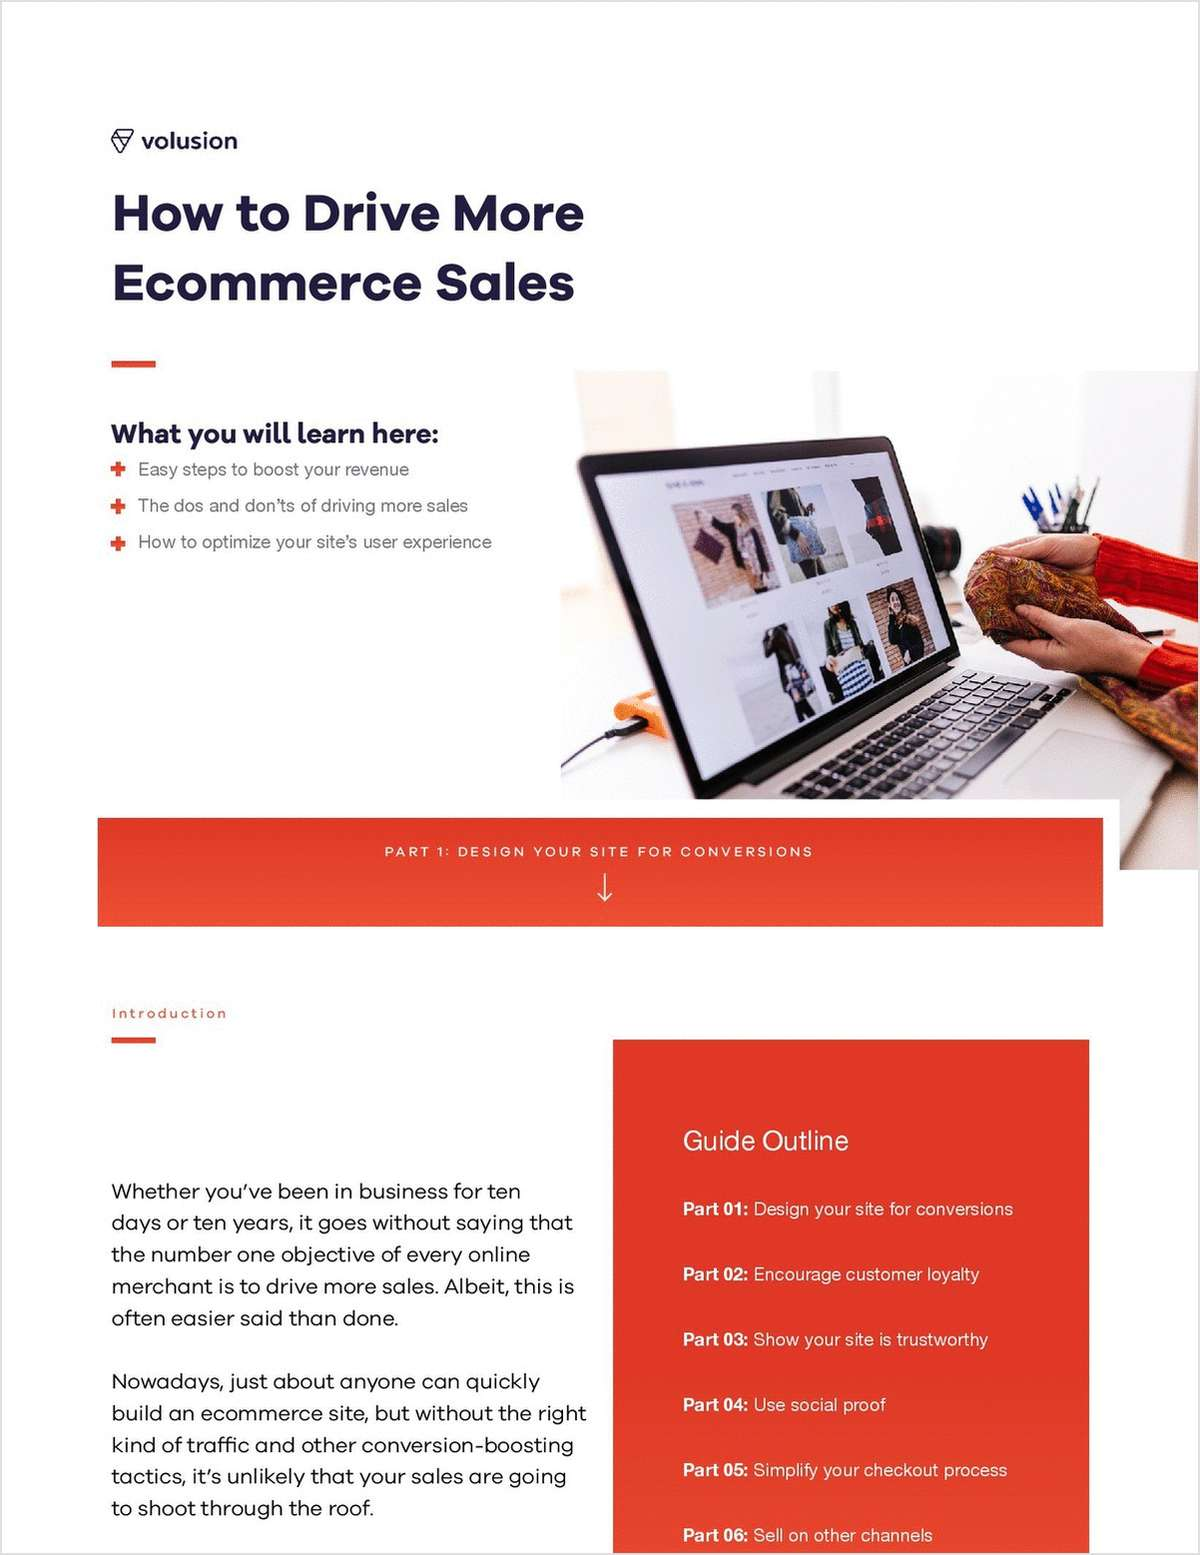 How to Drive More Ecommerce Sales